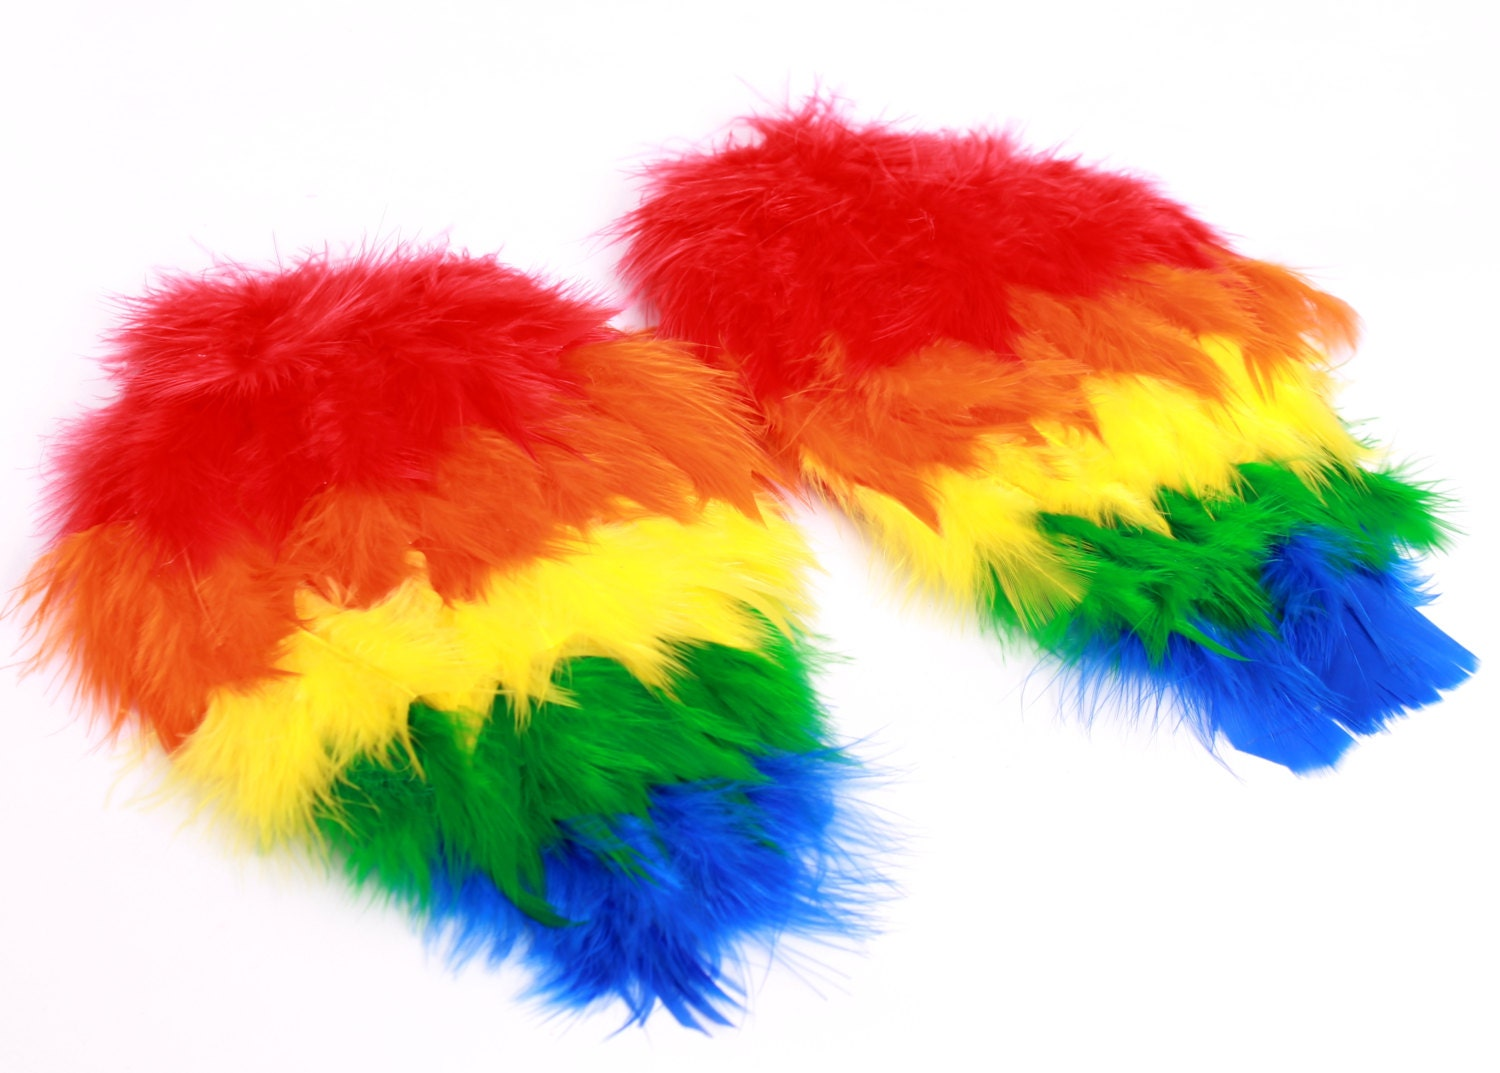 Parrot feathers - photo#26